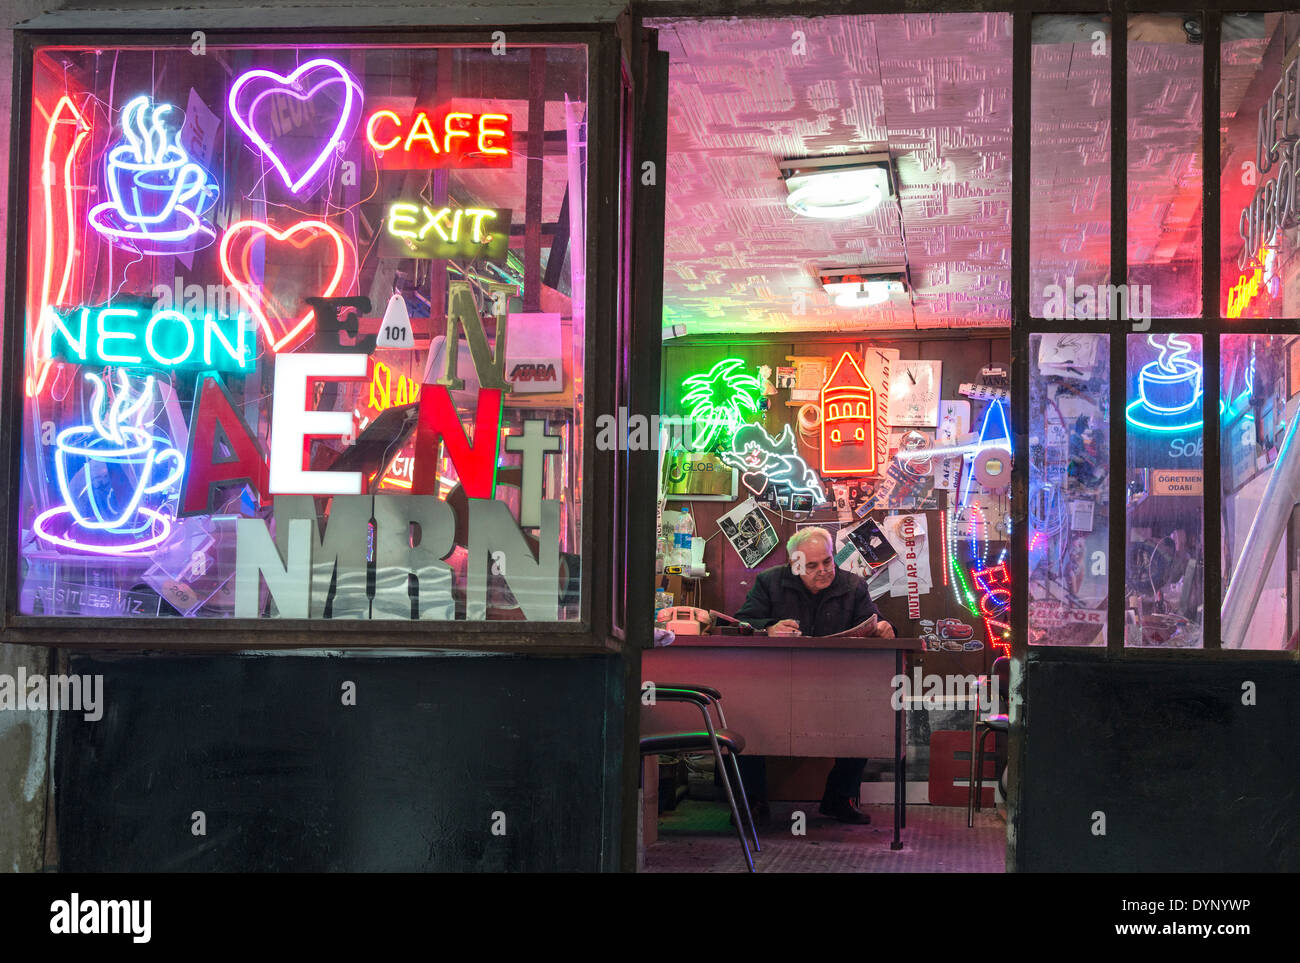 Neon sign makers workshop near Galata Tower, Beyoglu, Istanbul, Turkey. - Stock Image